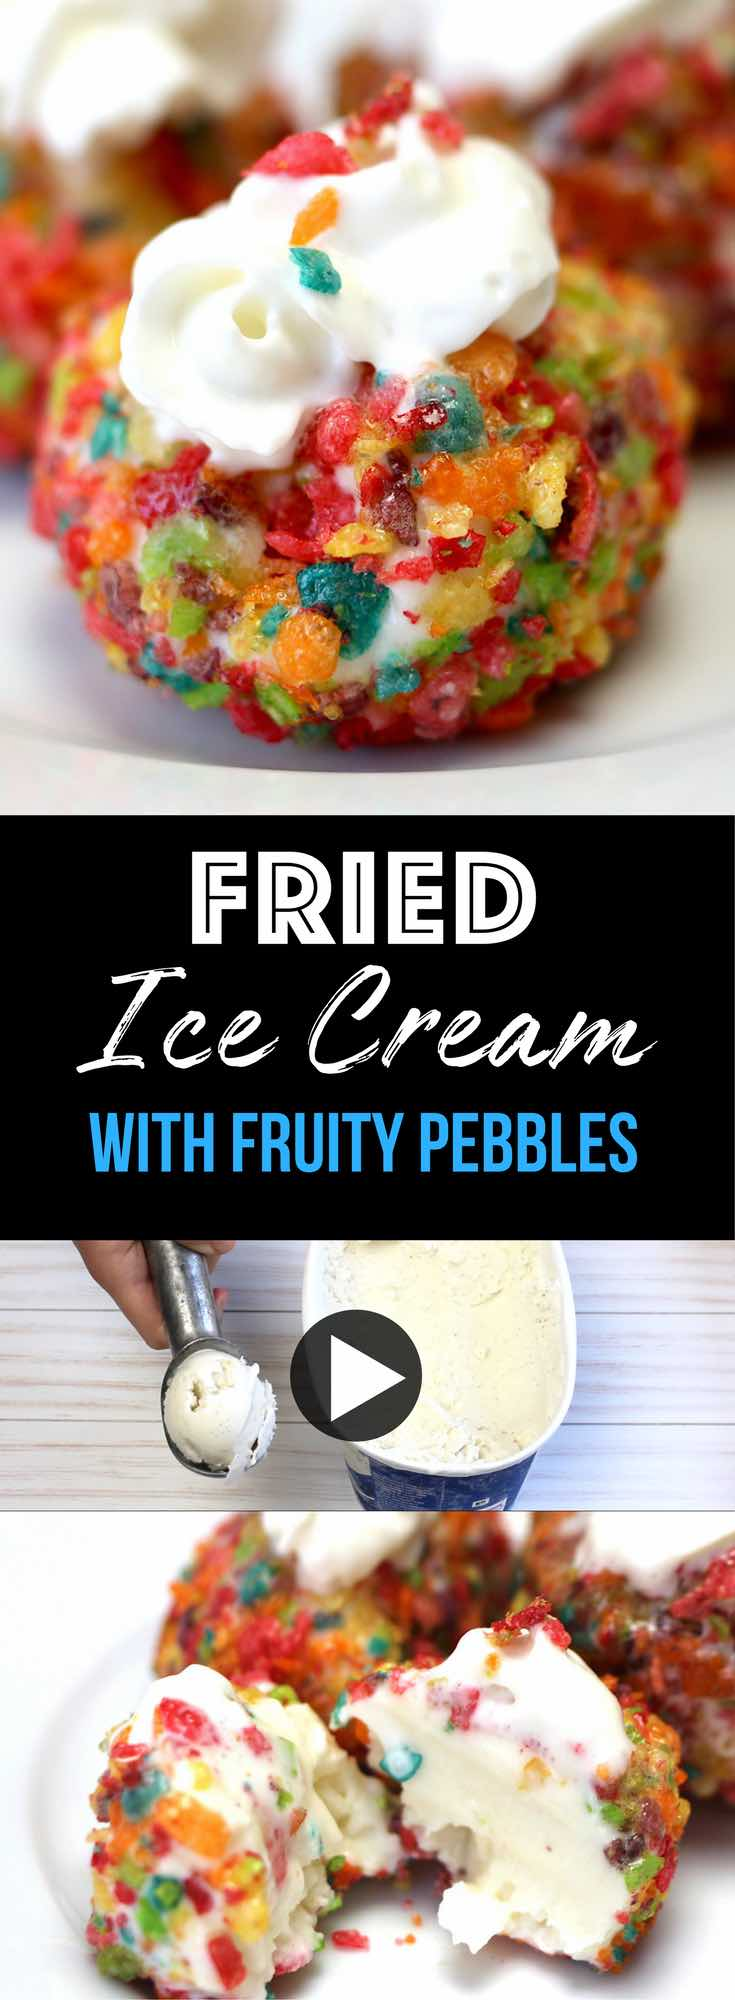 Fruity Pebbles Ice Cream is crispy on the outside and creamy in the middle. It's easy to make with just 3 ingredients!